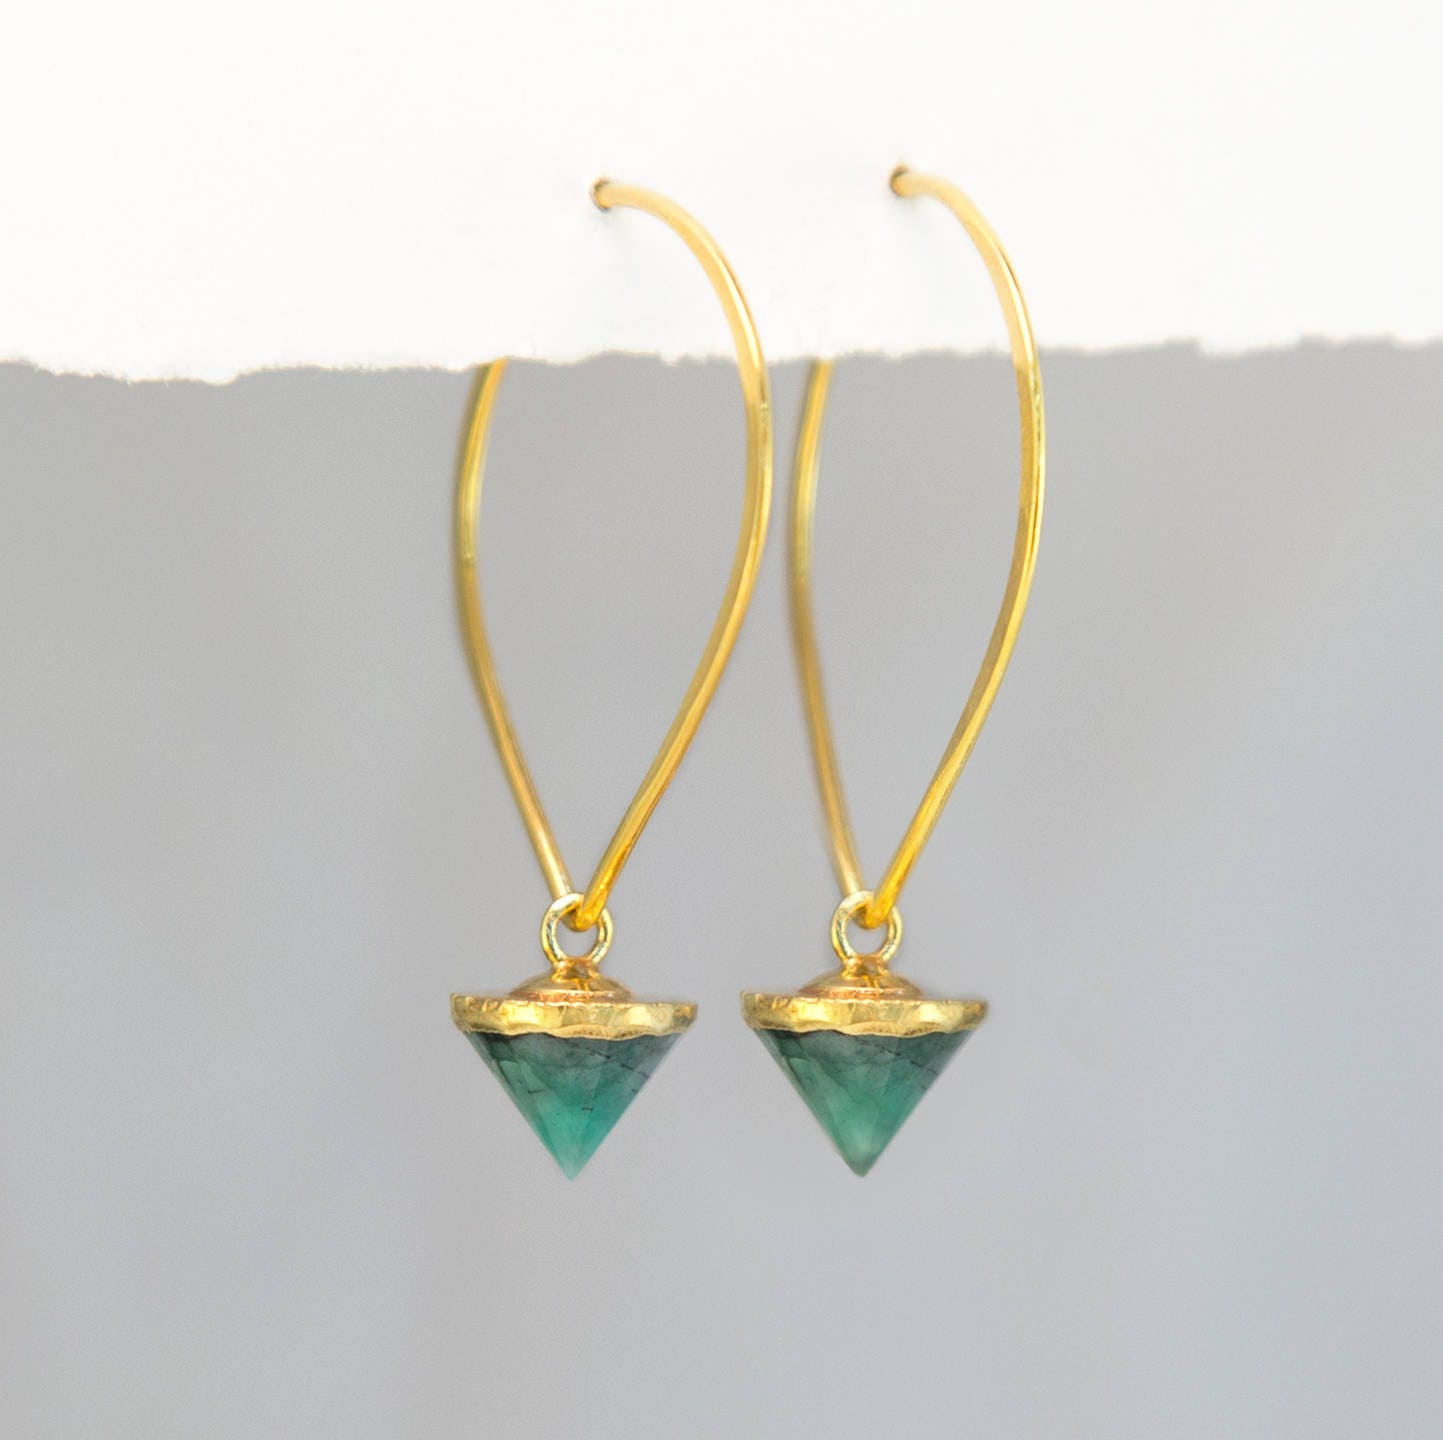 carat natural green unheated emerald certified earrings zambia grs diamond